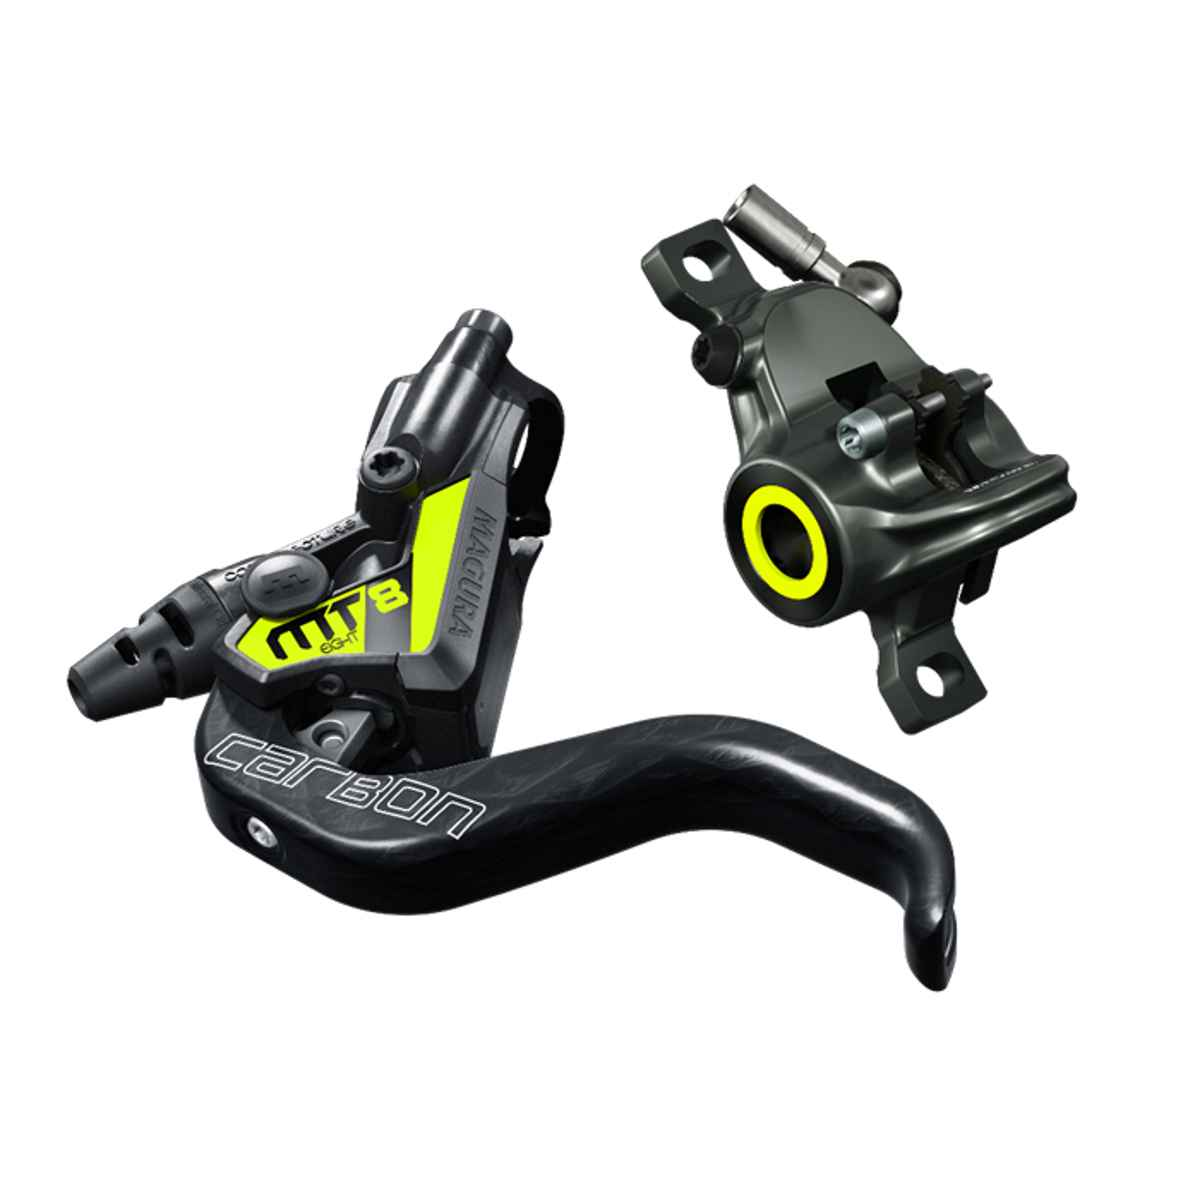 Magura Mt8 Sl Carbon Disc Brake*; Pm; F Or R; Carbon/Yellow - 2 701 657